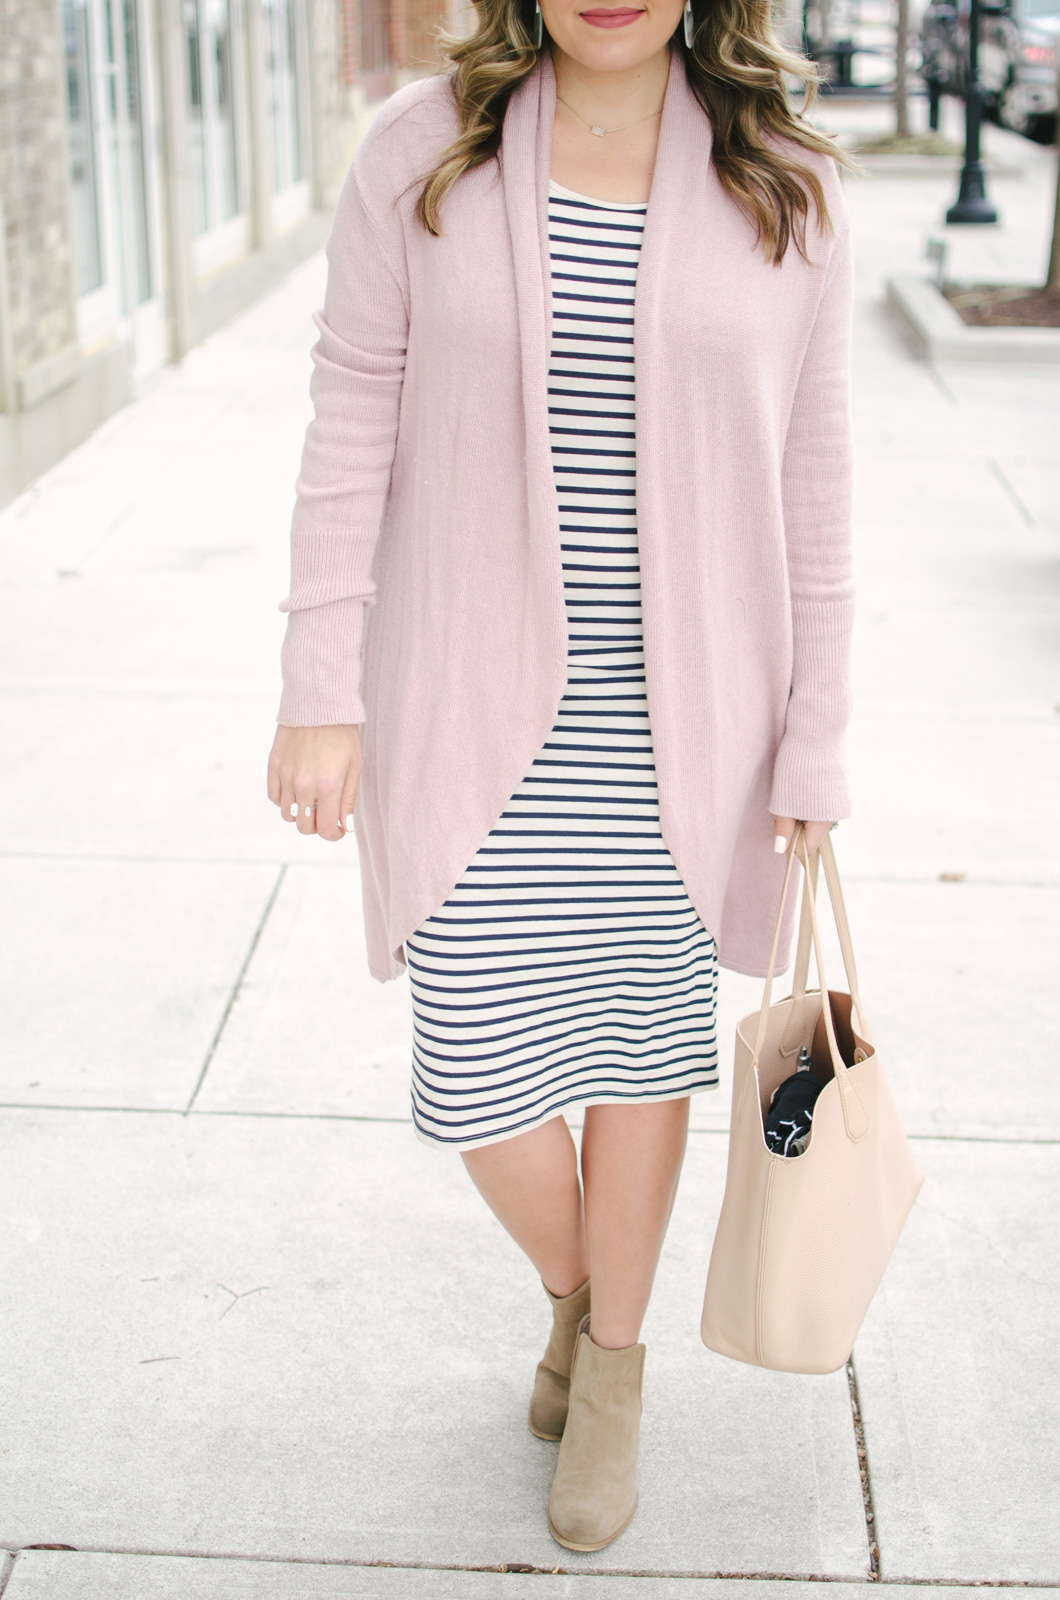 striped dress spring outfit - ways to wear a striped dress | Shop this look and see the other striped dress outfit at bylaurenm.com!